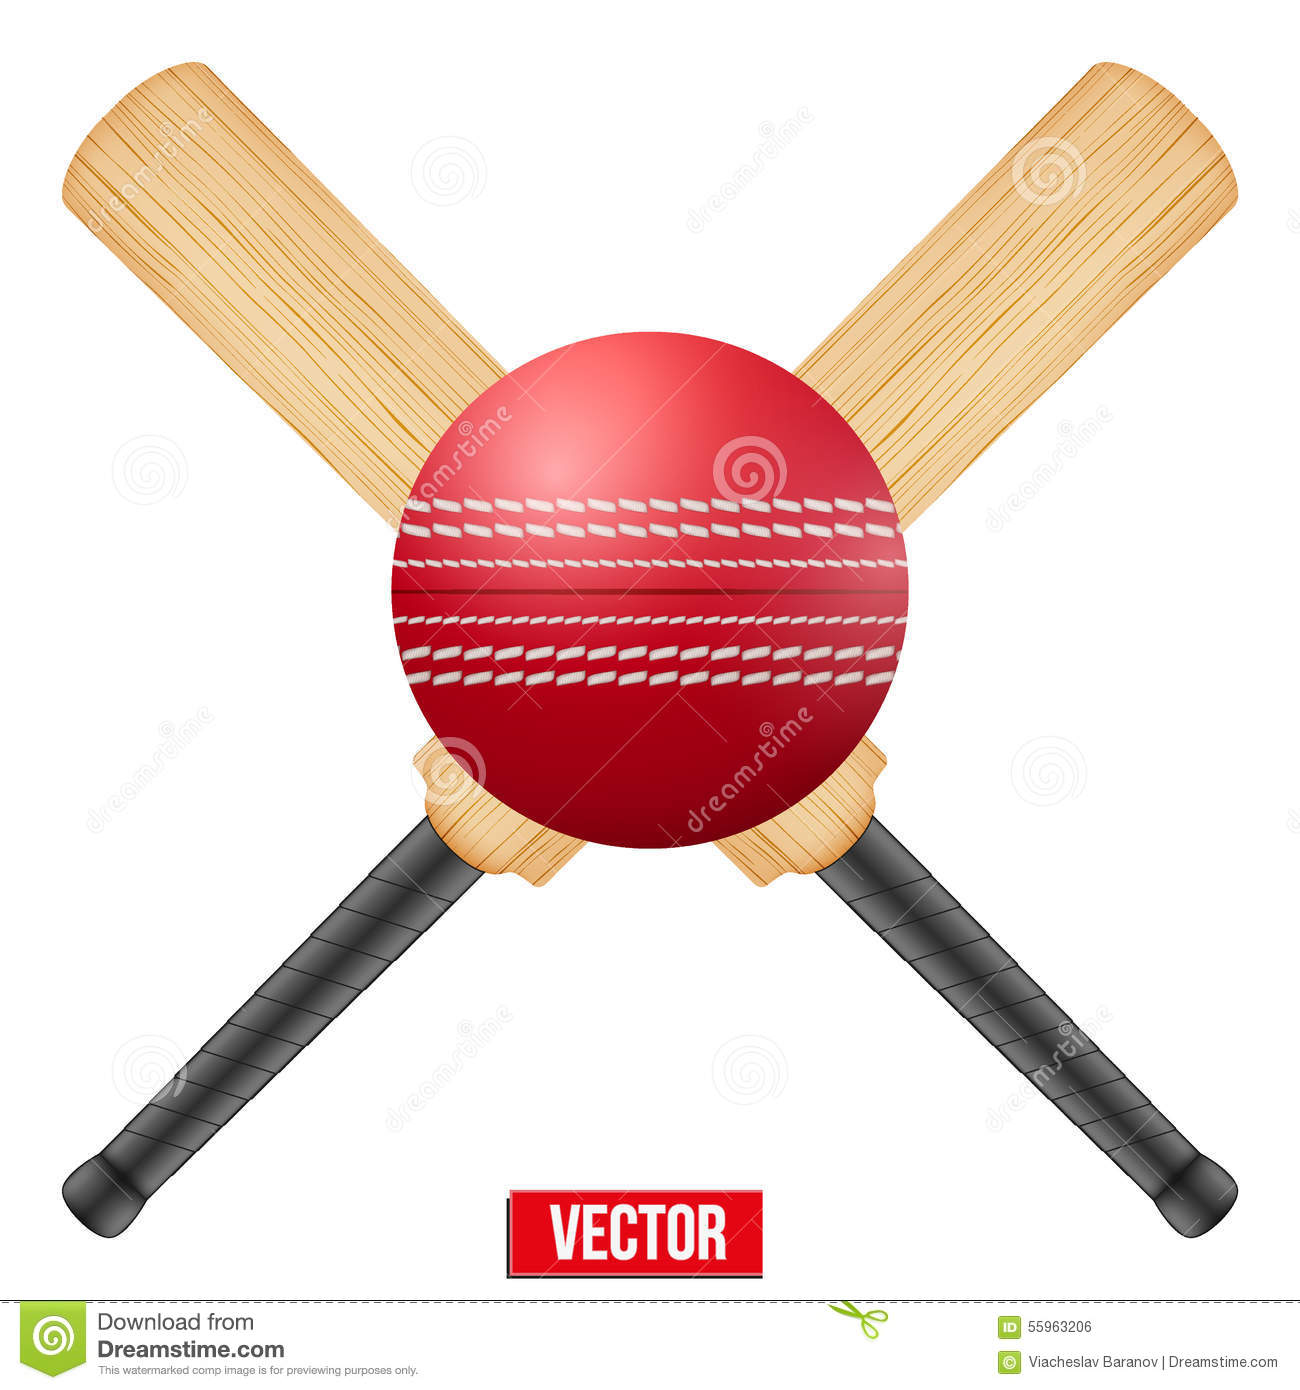 how to turn the ball in cricket